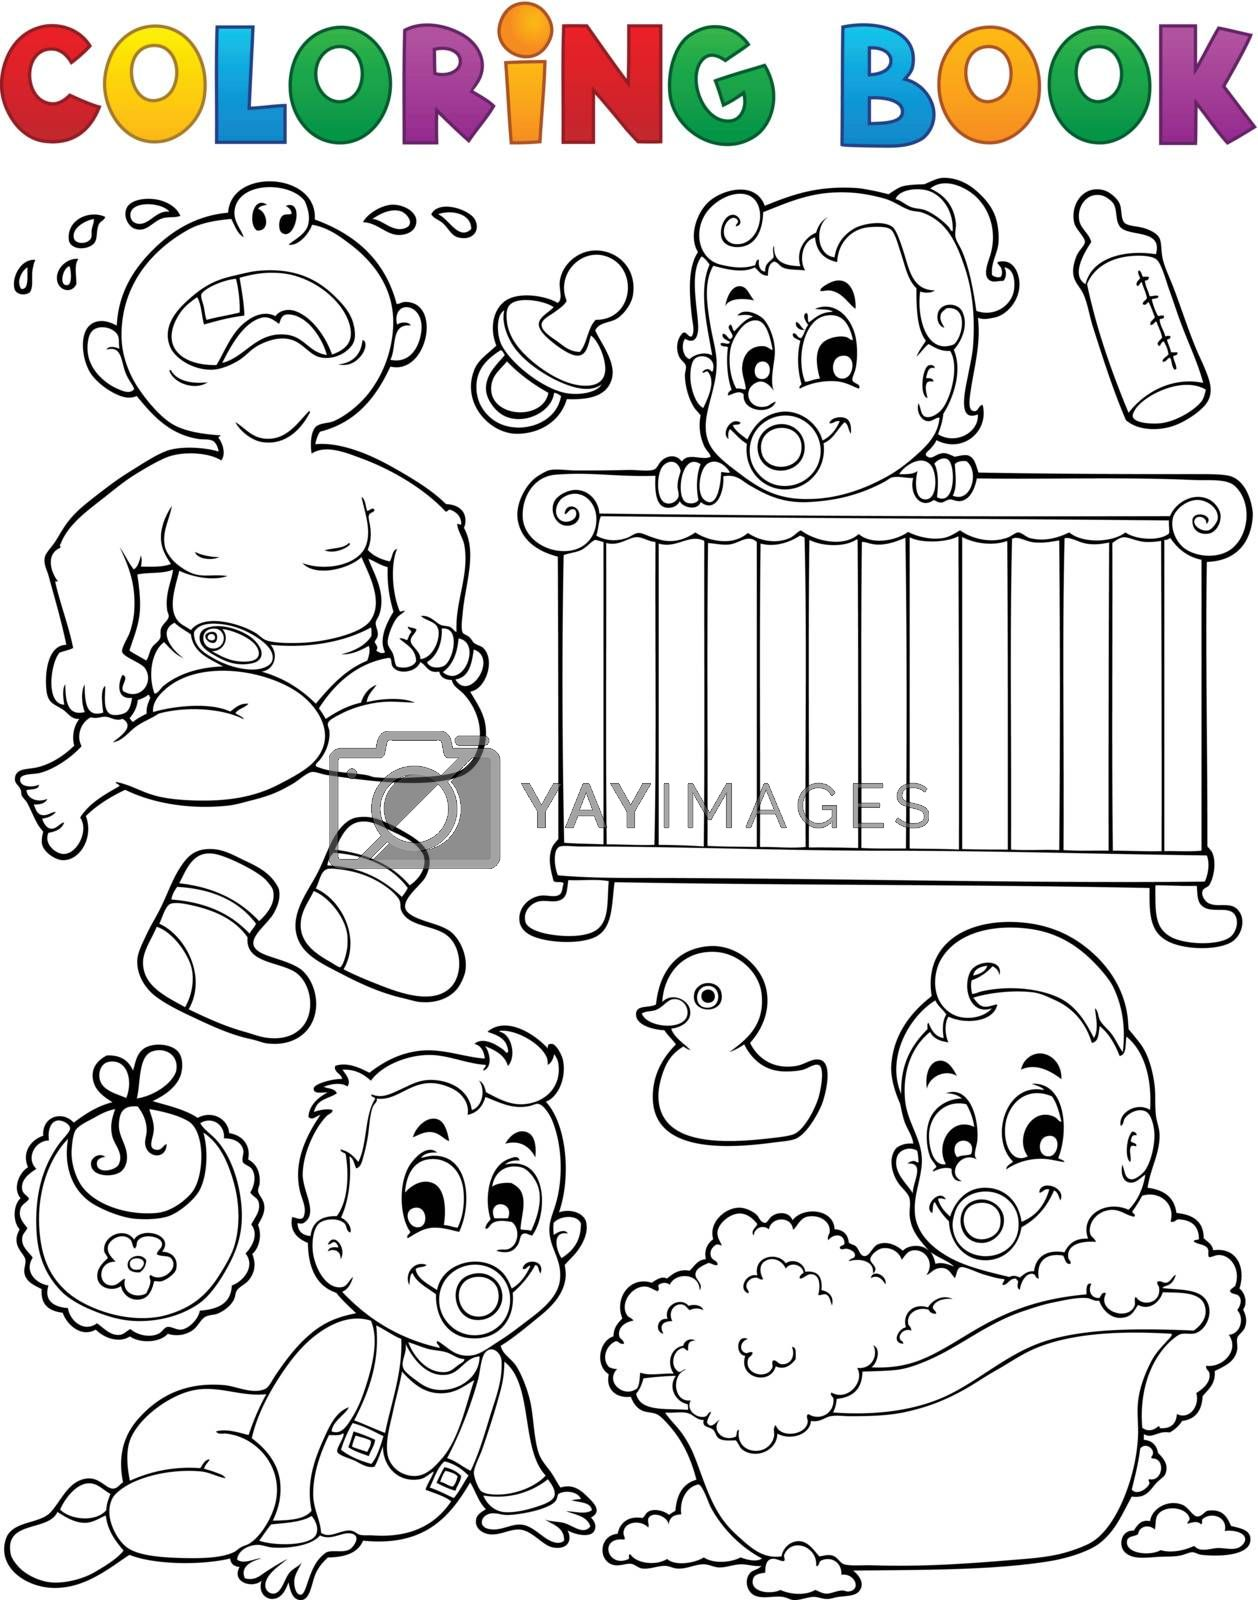 Coloring book babies theme image 1 by clairev